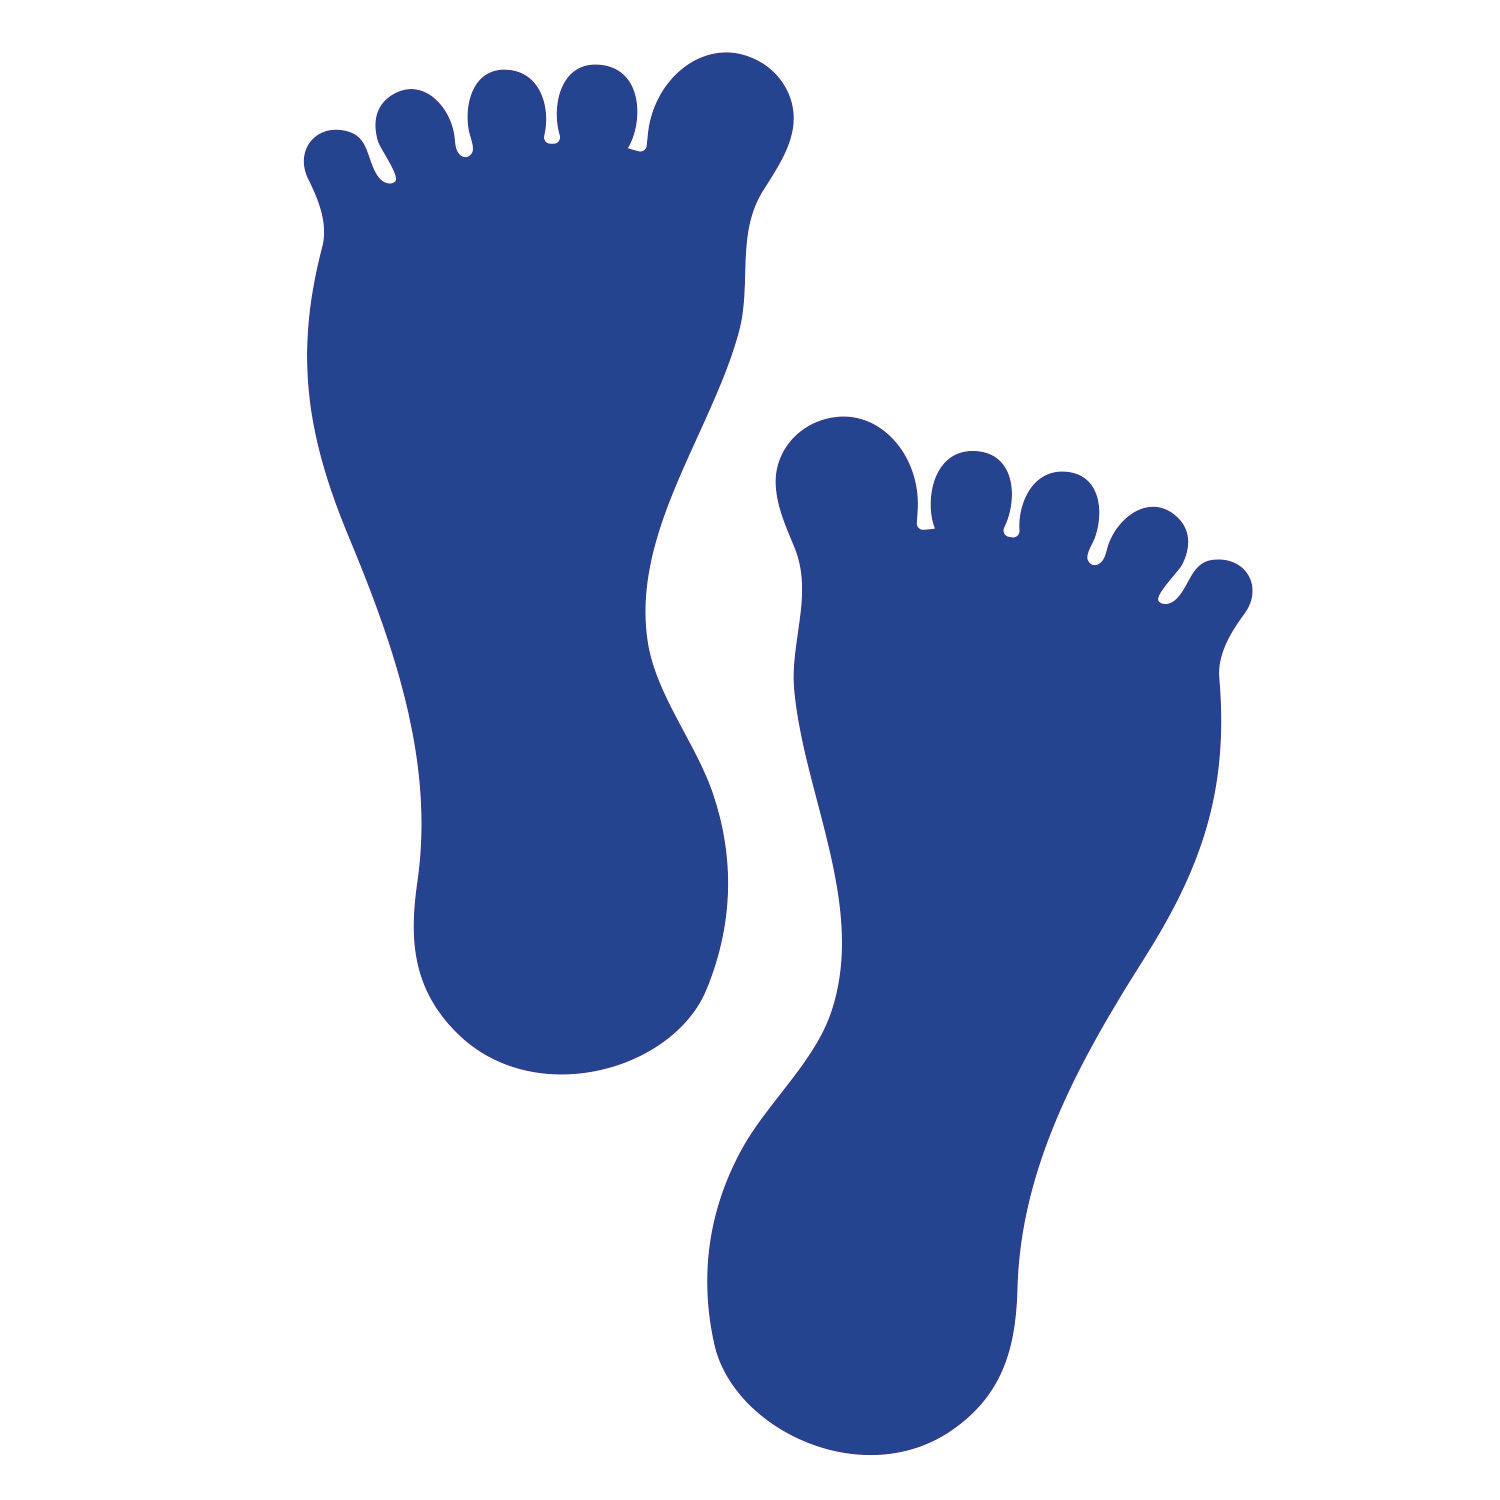 Primary image for LiteMark 7 Inch Blue Removable Barefoot Decals for Floors and Walls 12 Pack